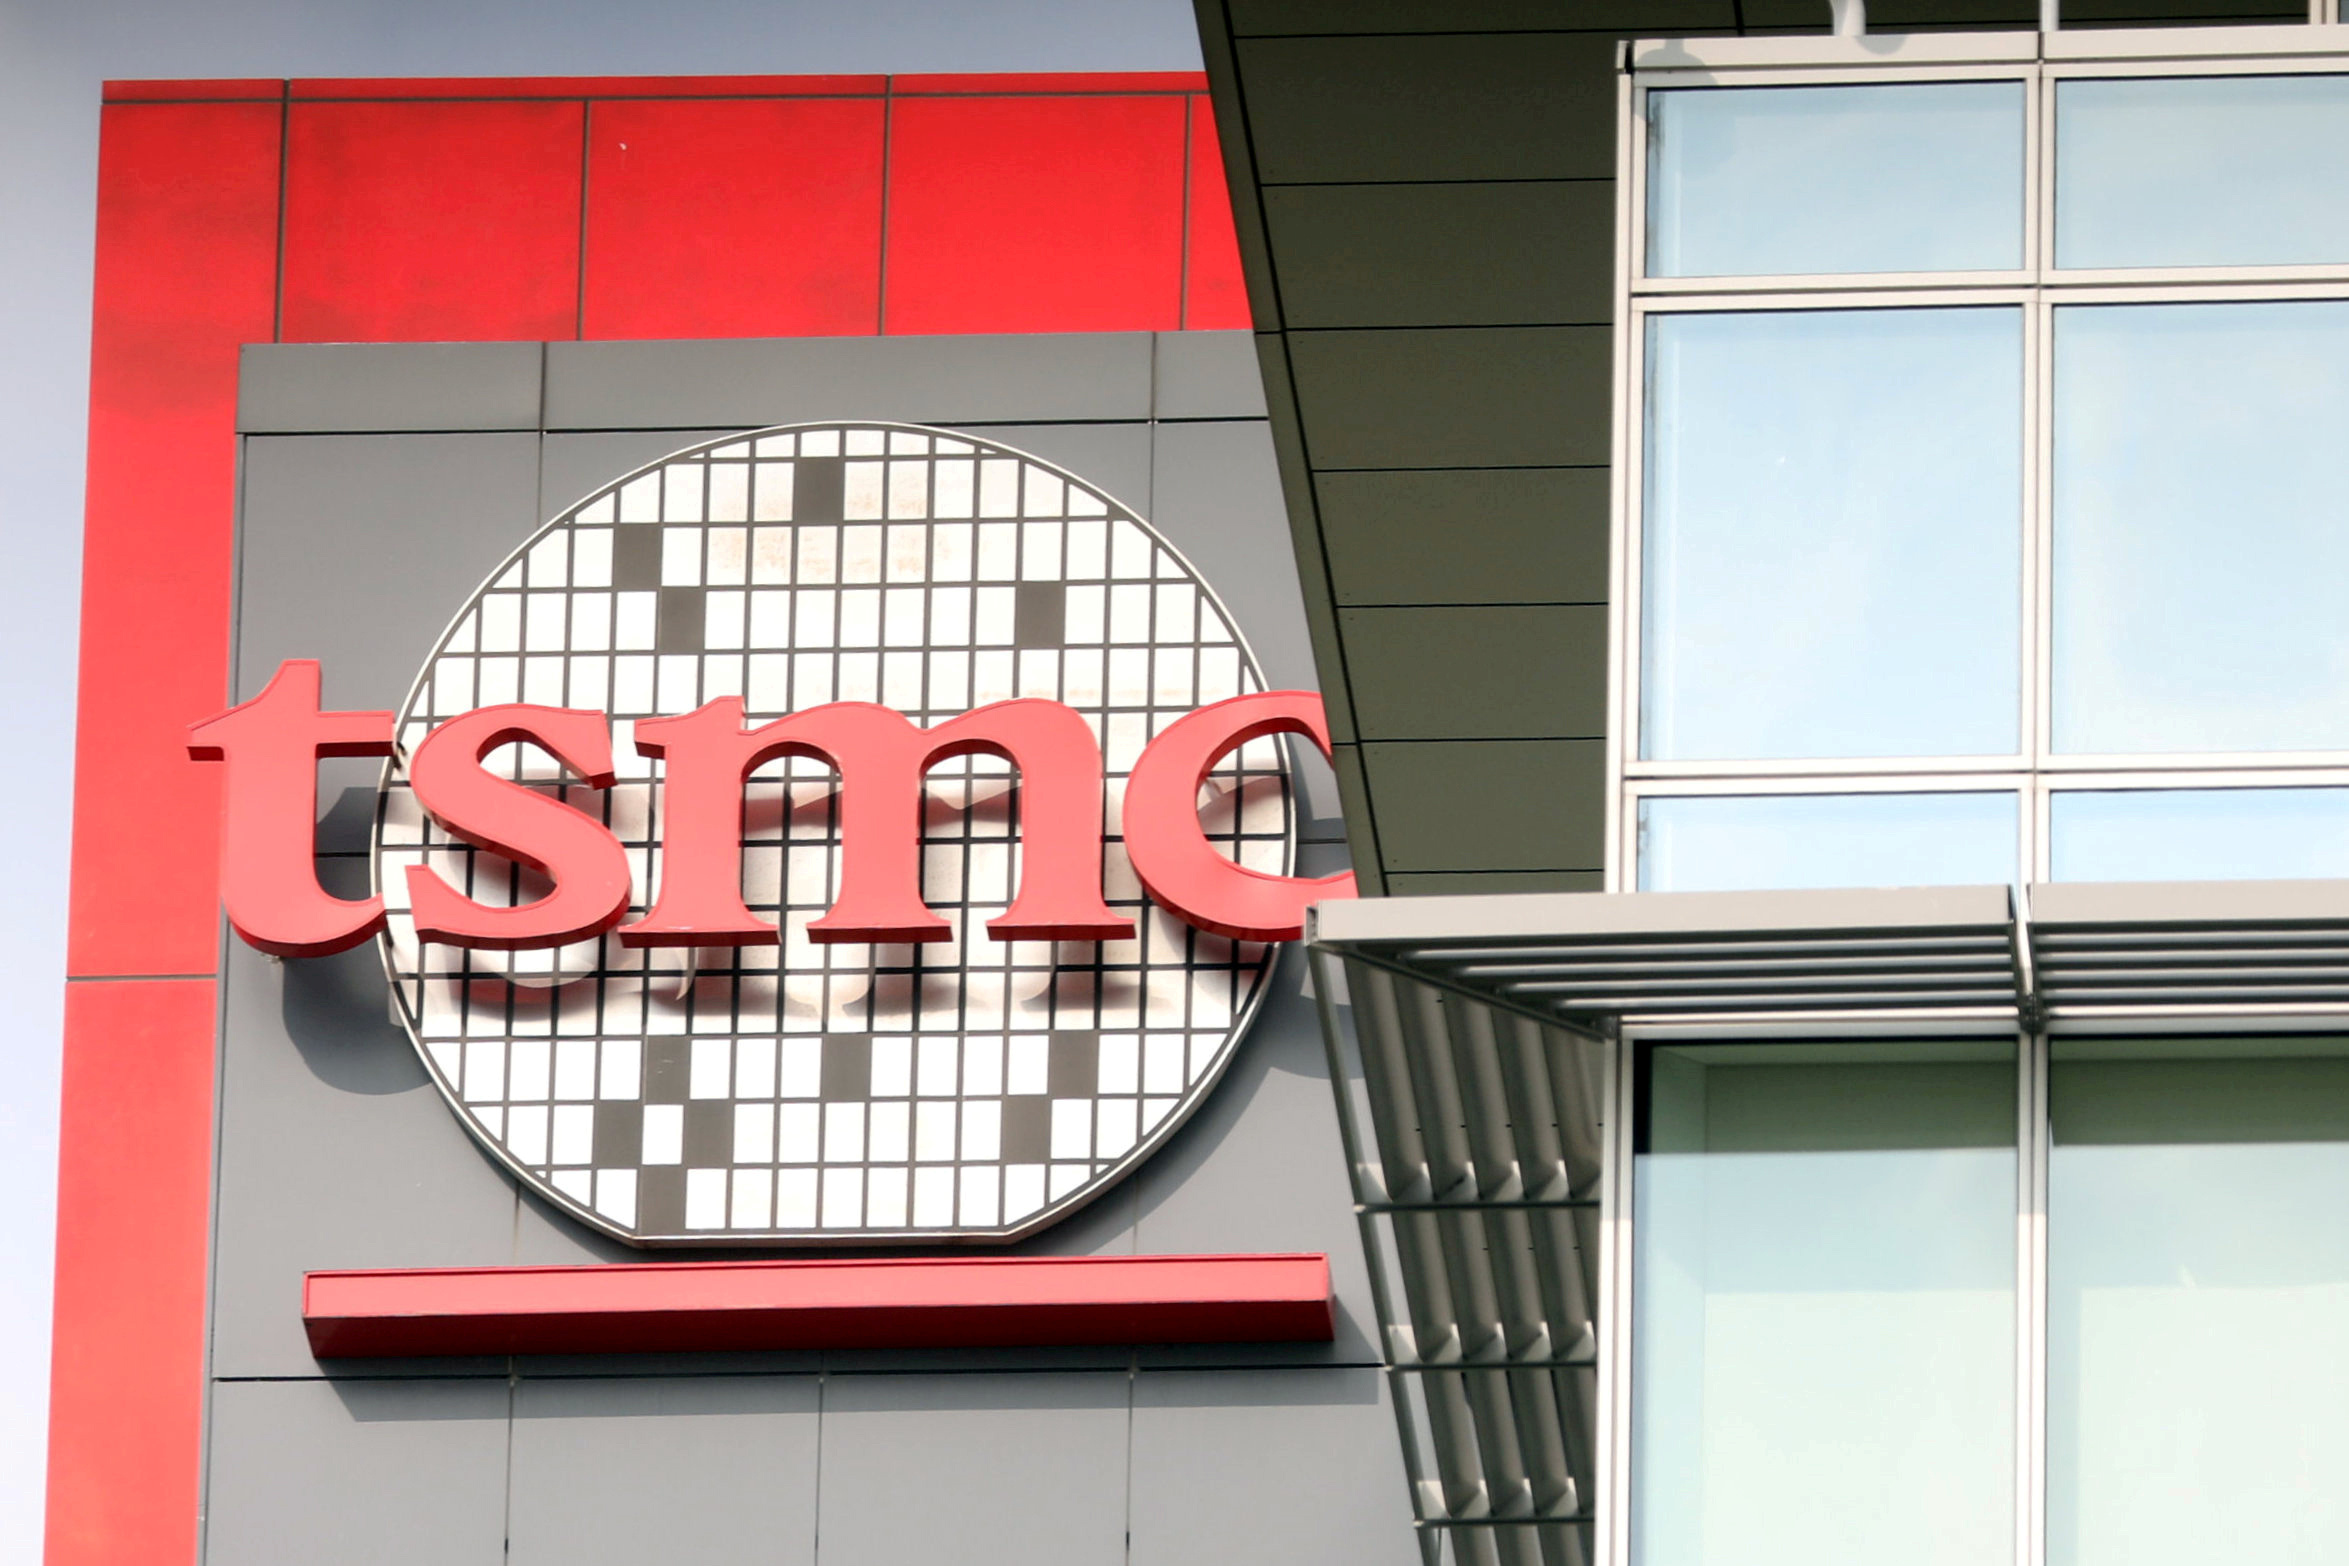 The logo of Taiwan Semiconductor Manufacturing Co (TSMC) is seen on one of its office buildings in Tainan, Taiwan August 20, 2020. REUTERS/Ann Wang